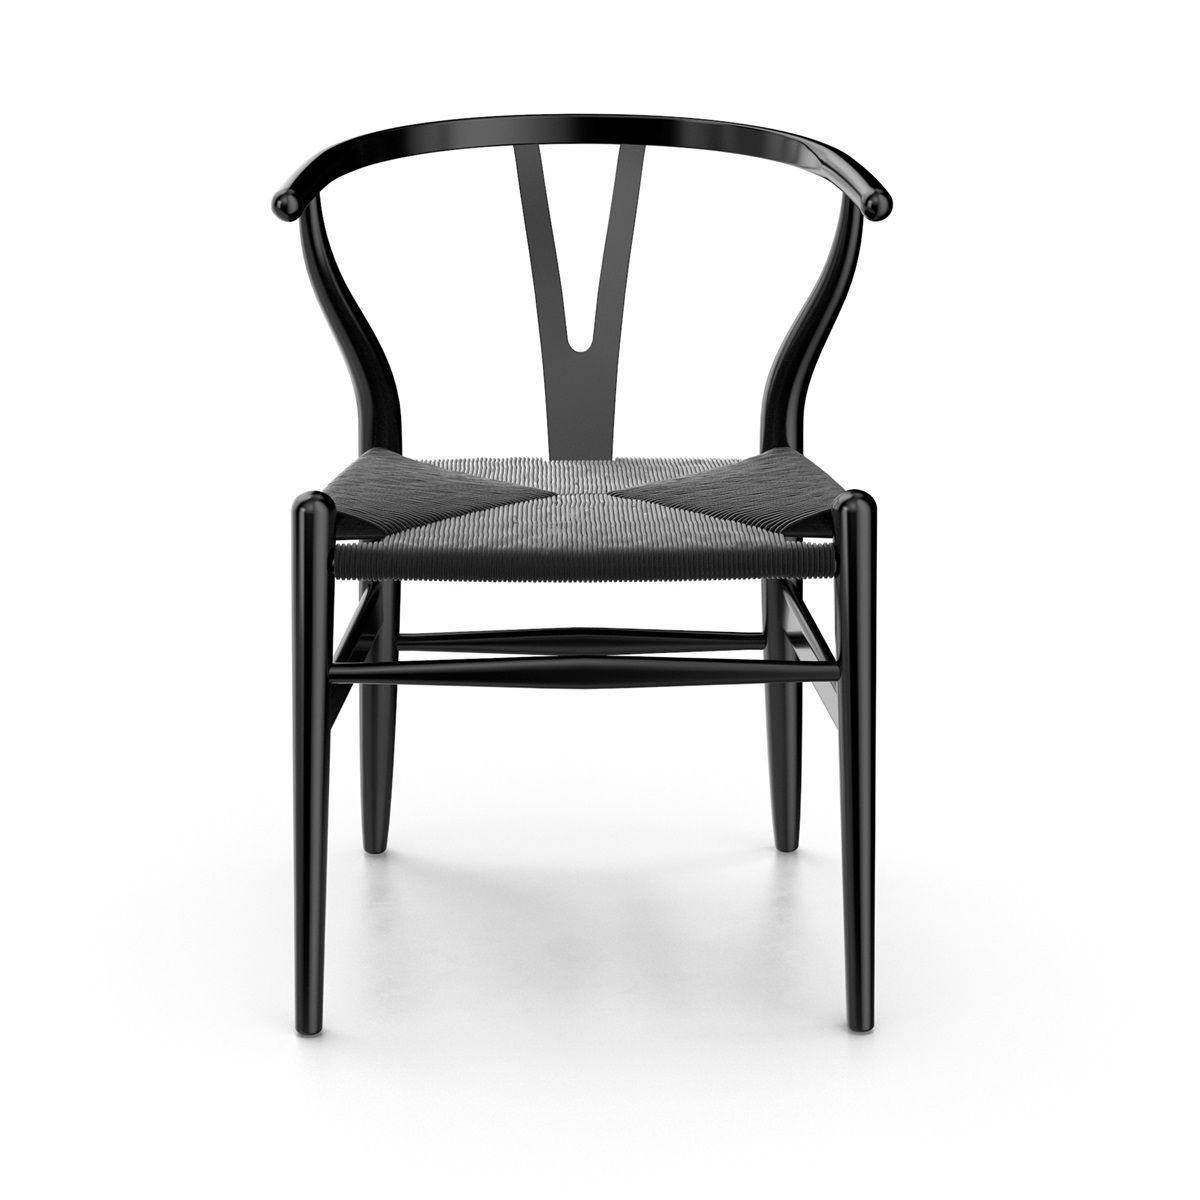 Hans wegner ch24 wishbone chair solid wood dining chairs